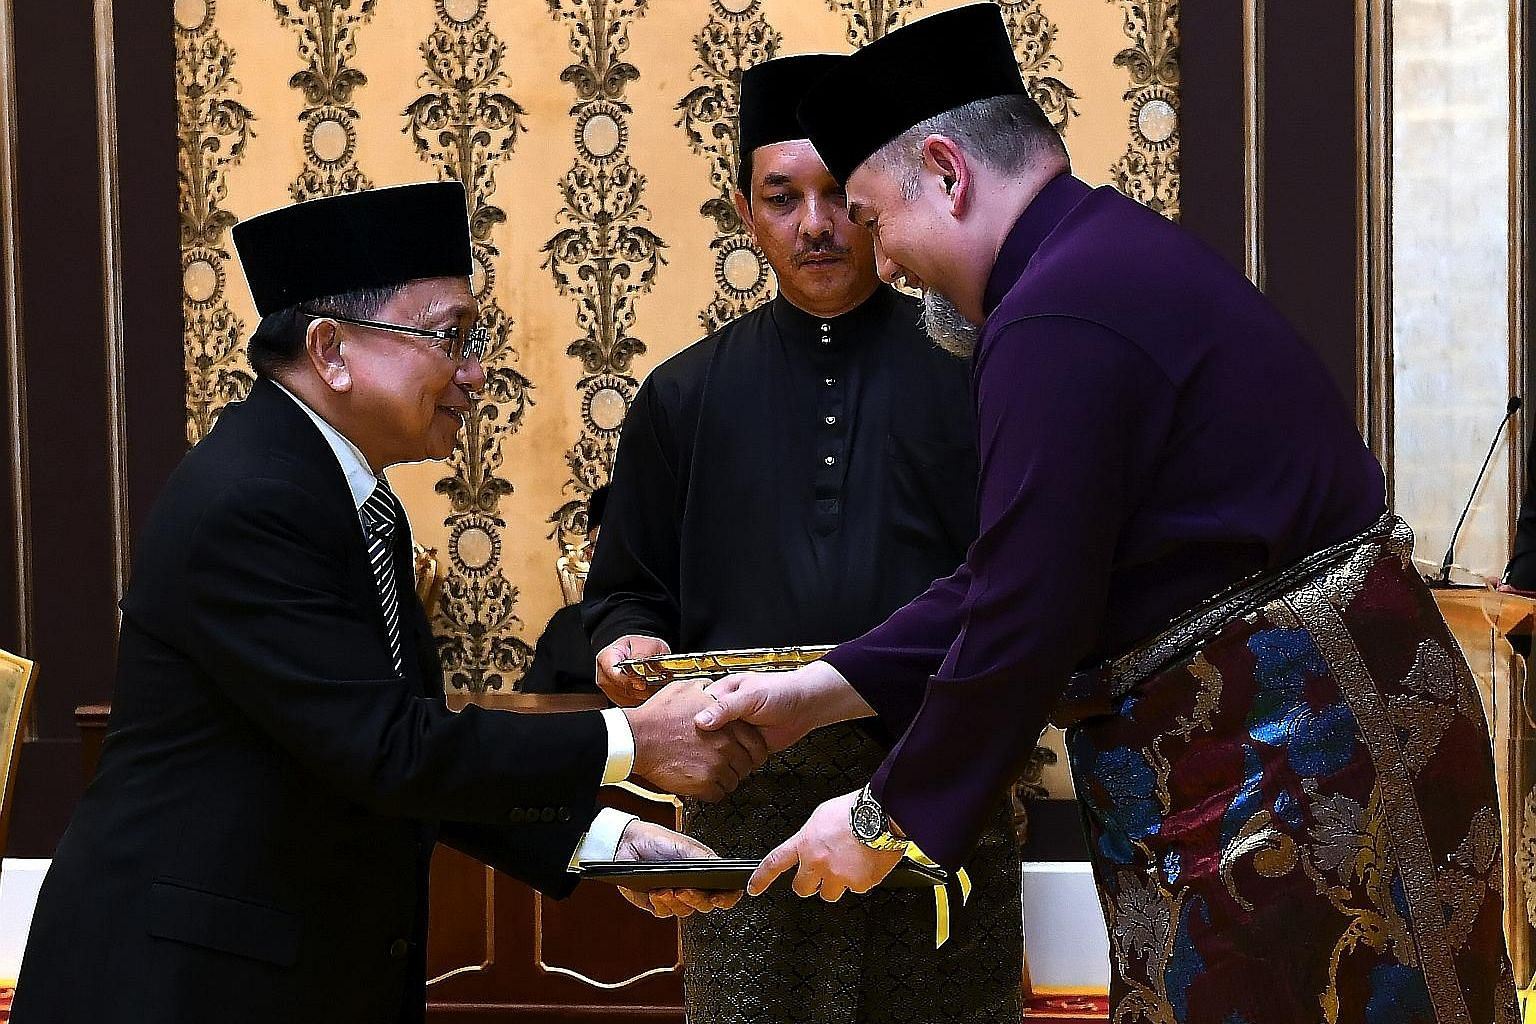 Malaysia's King, Sultan Muhammad V, handing the Chief Justice appointment letter to Tan Sri Richard Malanjum at Istana Negara last Wednesday.